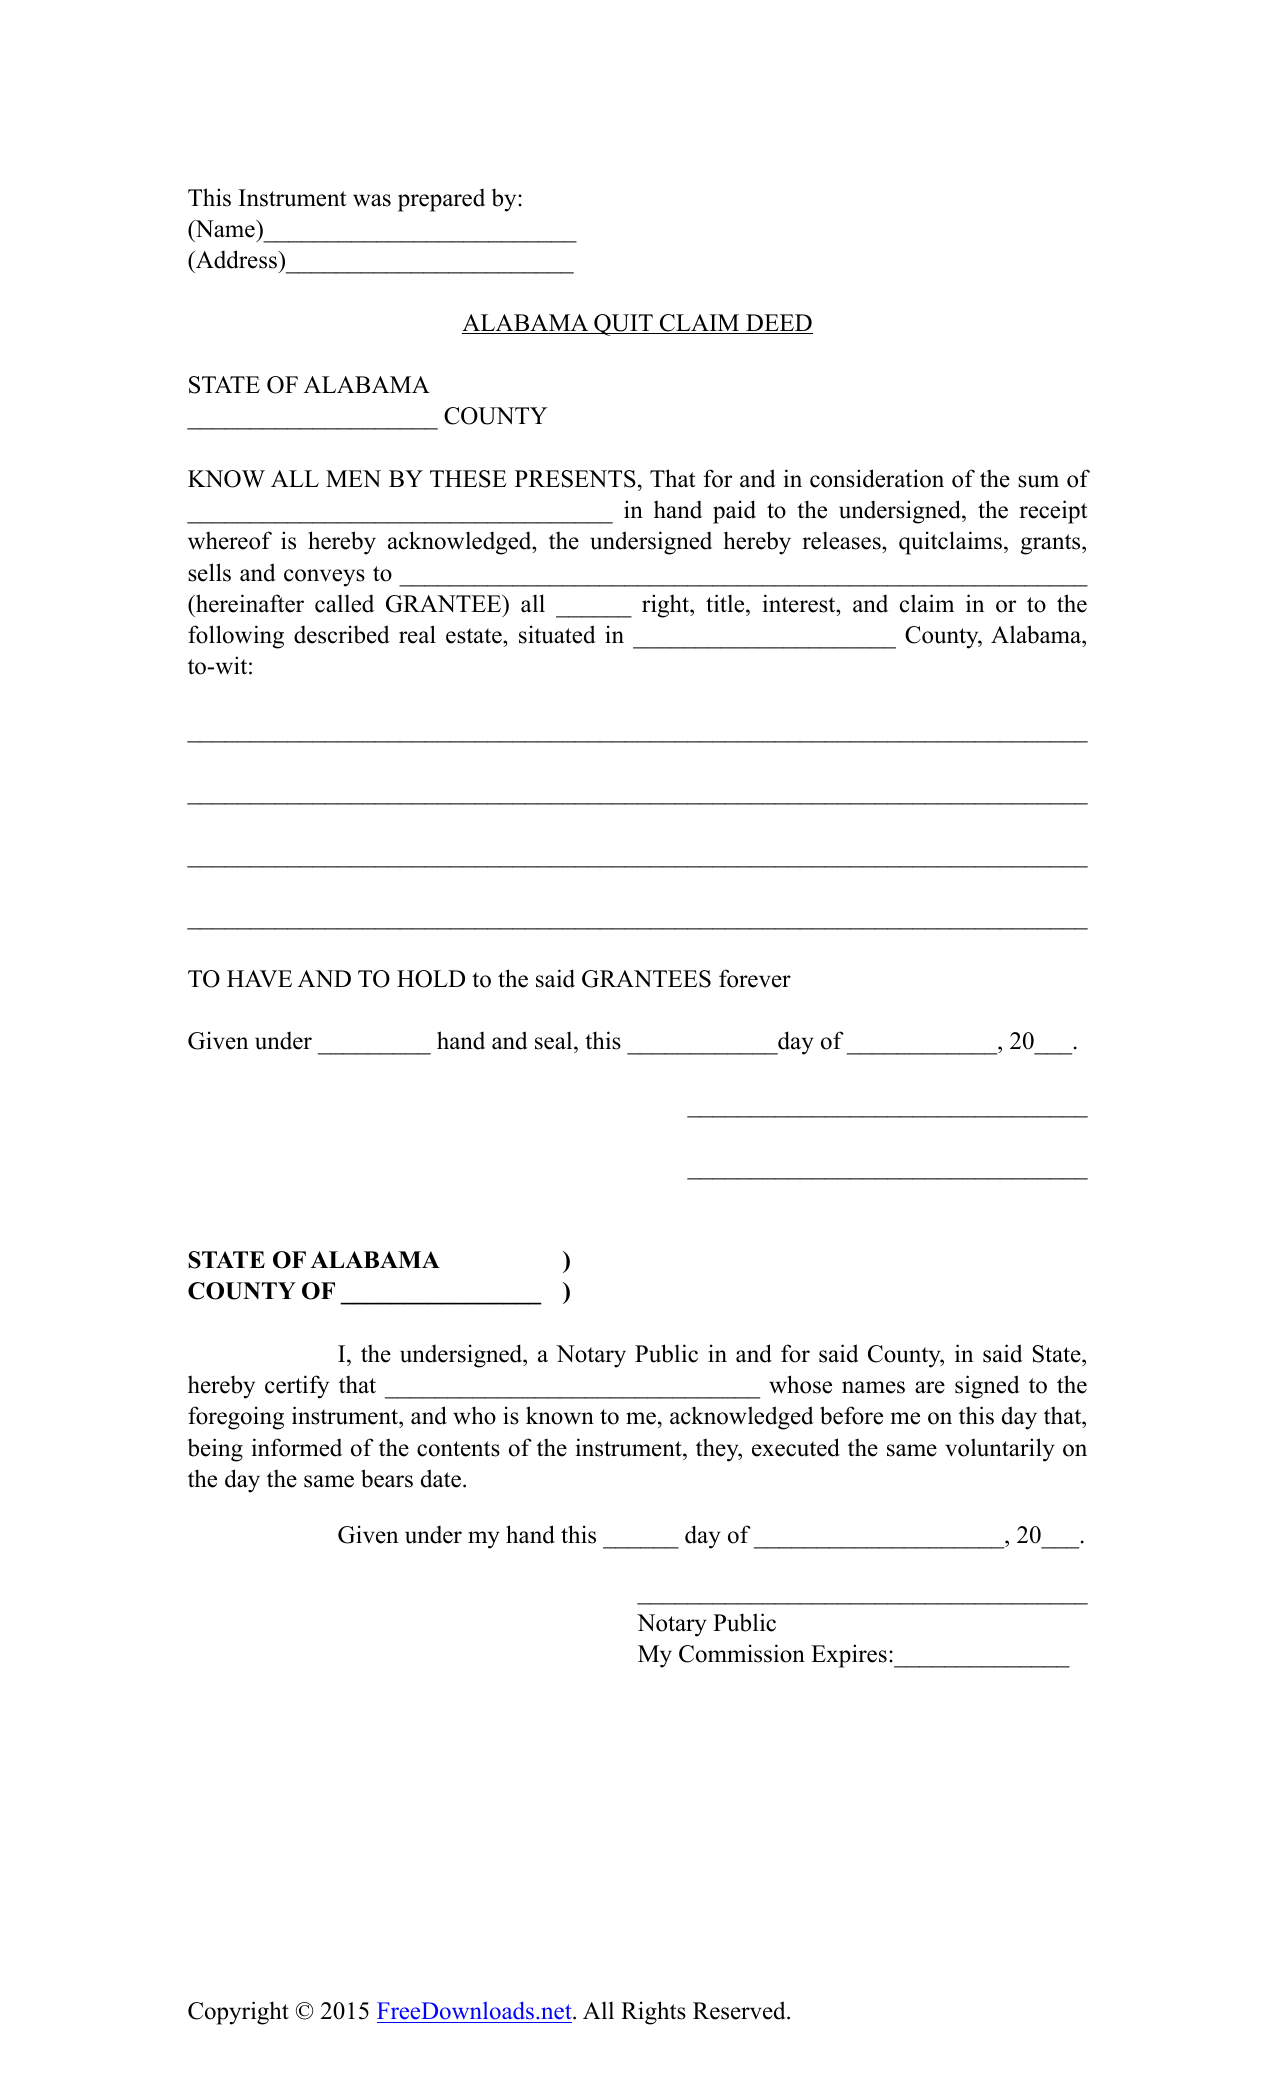 Alabama Quitclaim Deed Form